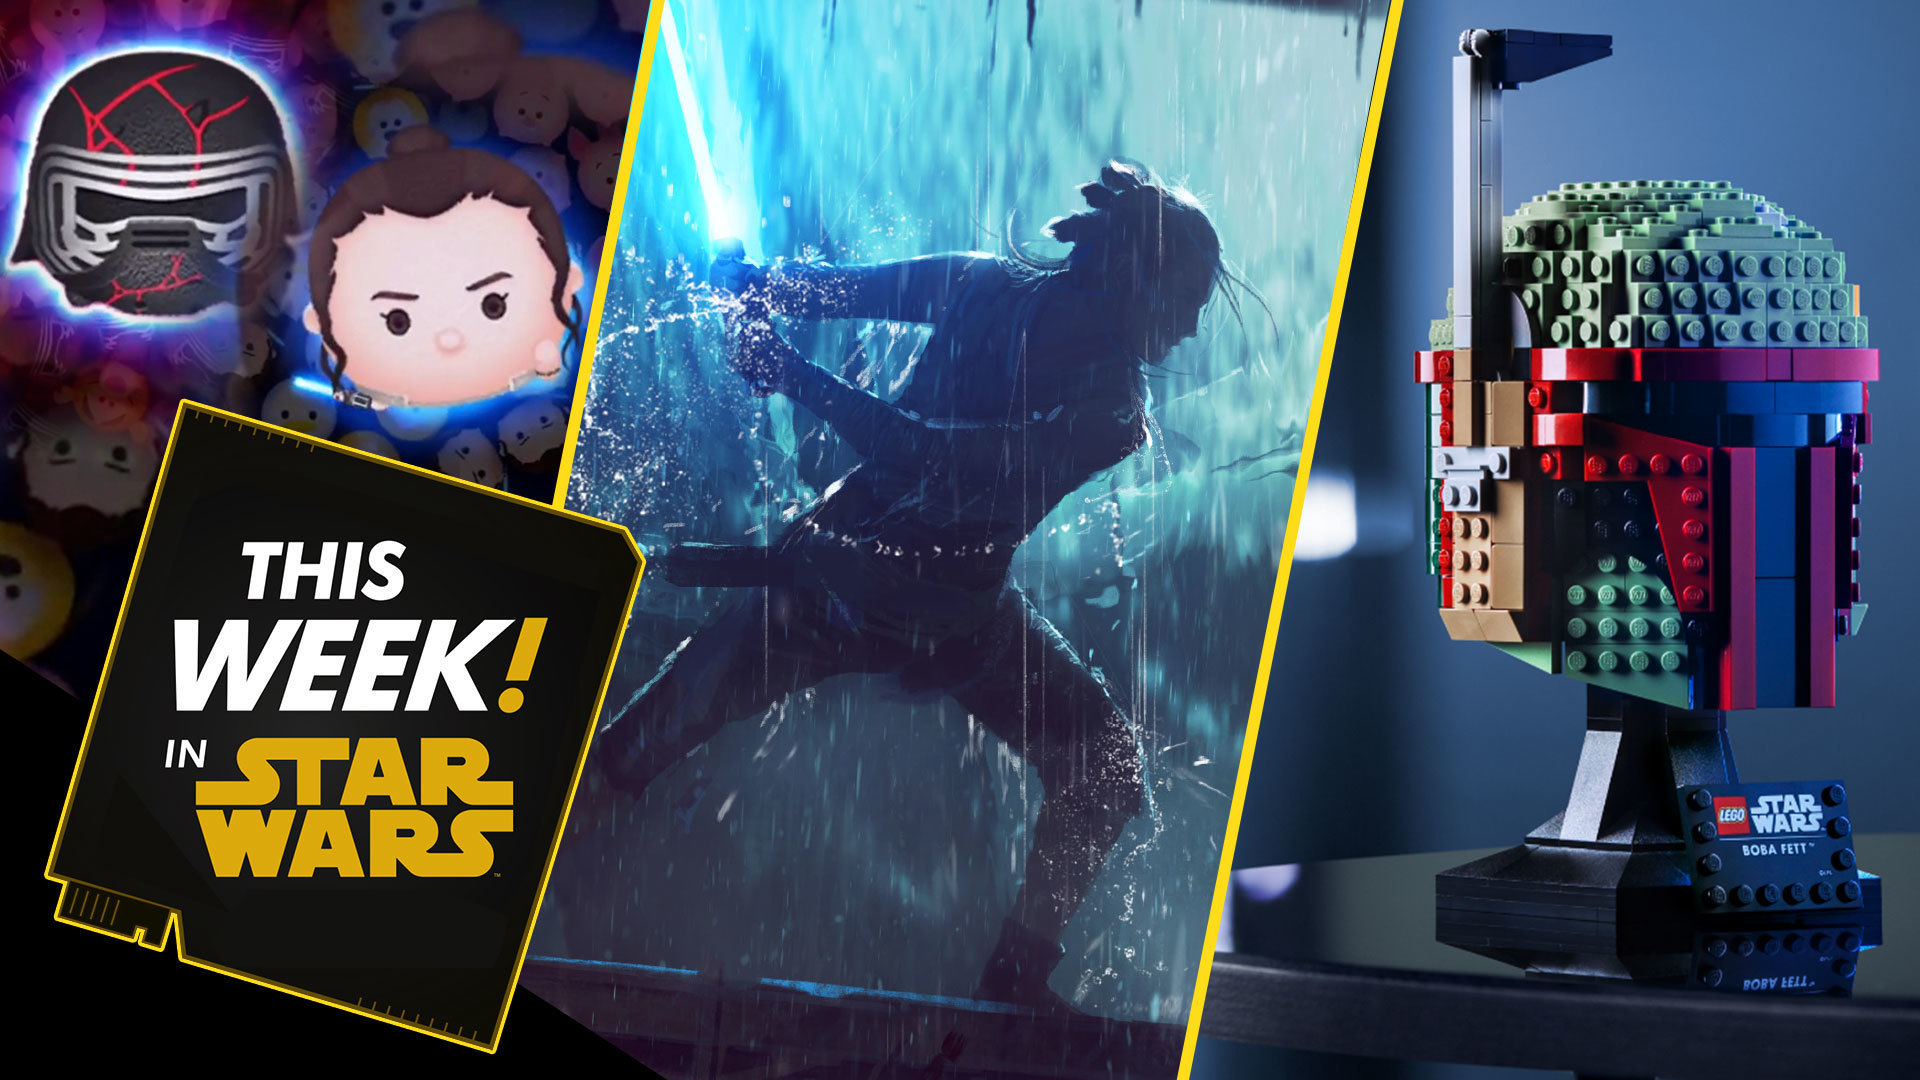 Behind the Scenes of Star Wars: The Rise of Skywalker, LEGO Bucketheads, and More!